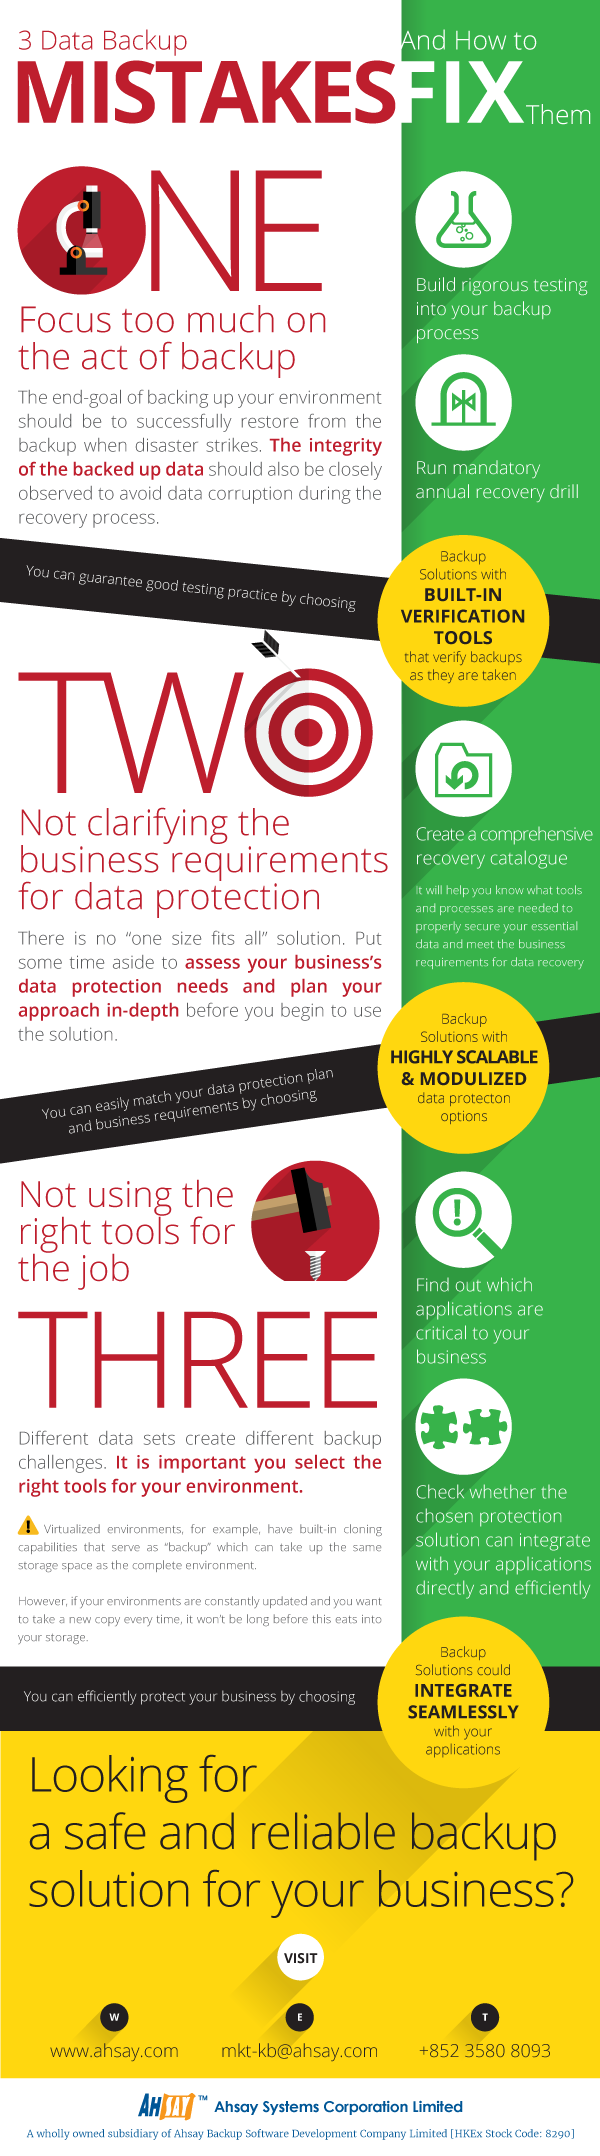 Infographic: 3 Data Backup Mistakes and How to Fix Them